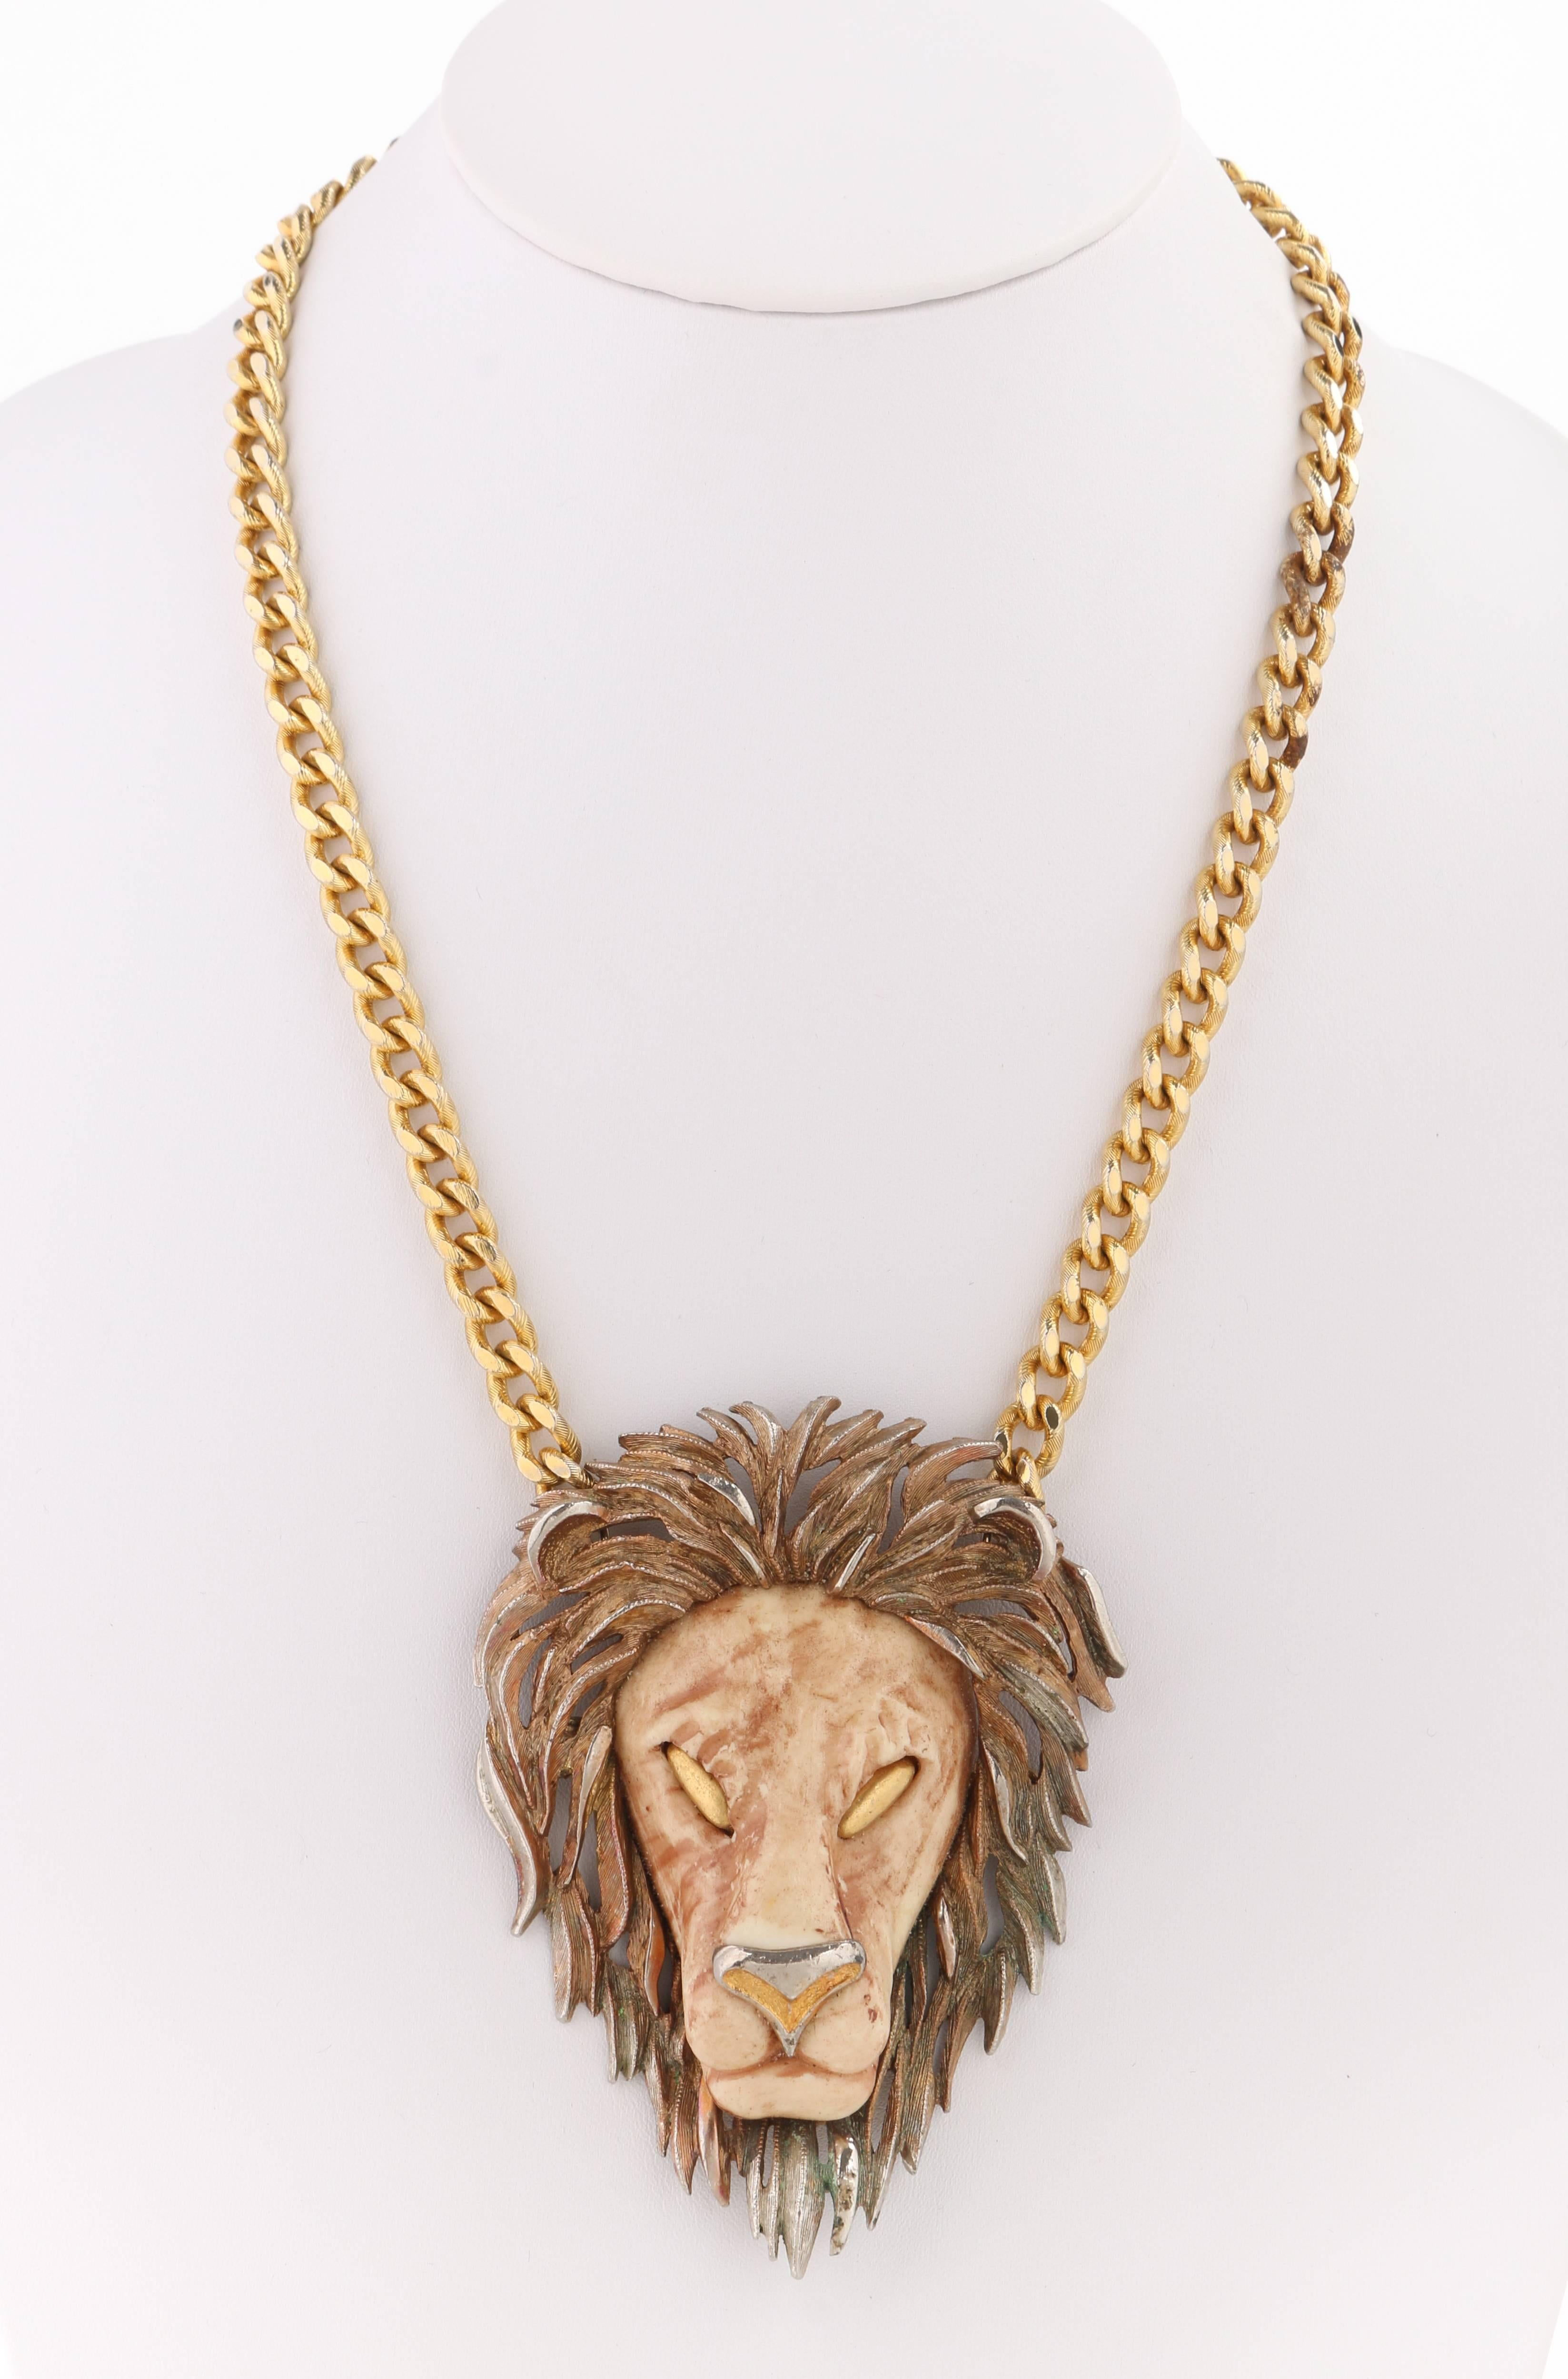 lion necklace pendant herakles products floor wholesale mosaic ncklwc getty